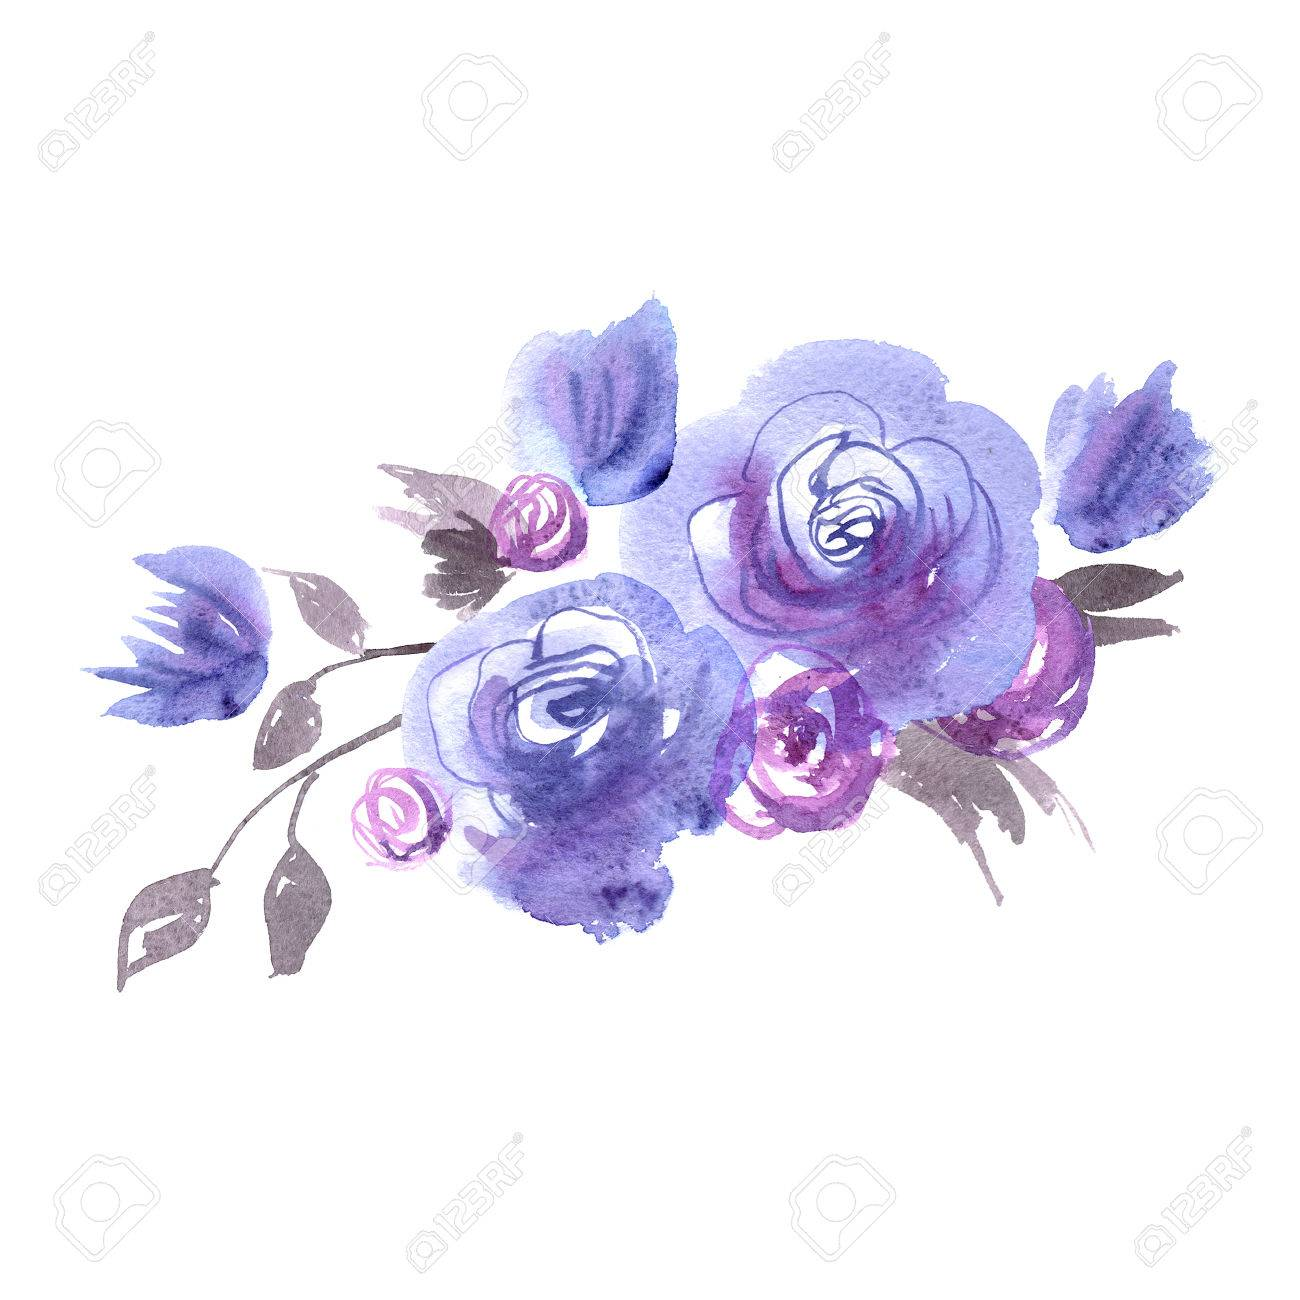 cute watercolor flowers blue roses elements for invitation